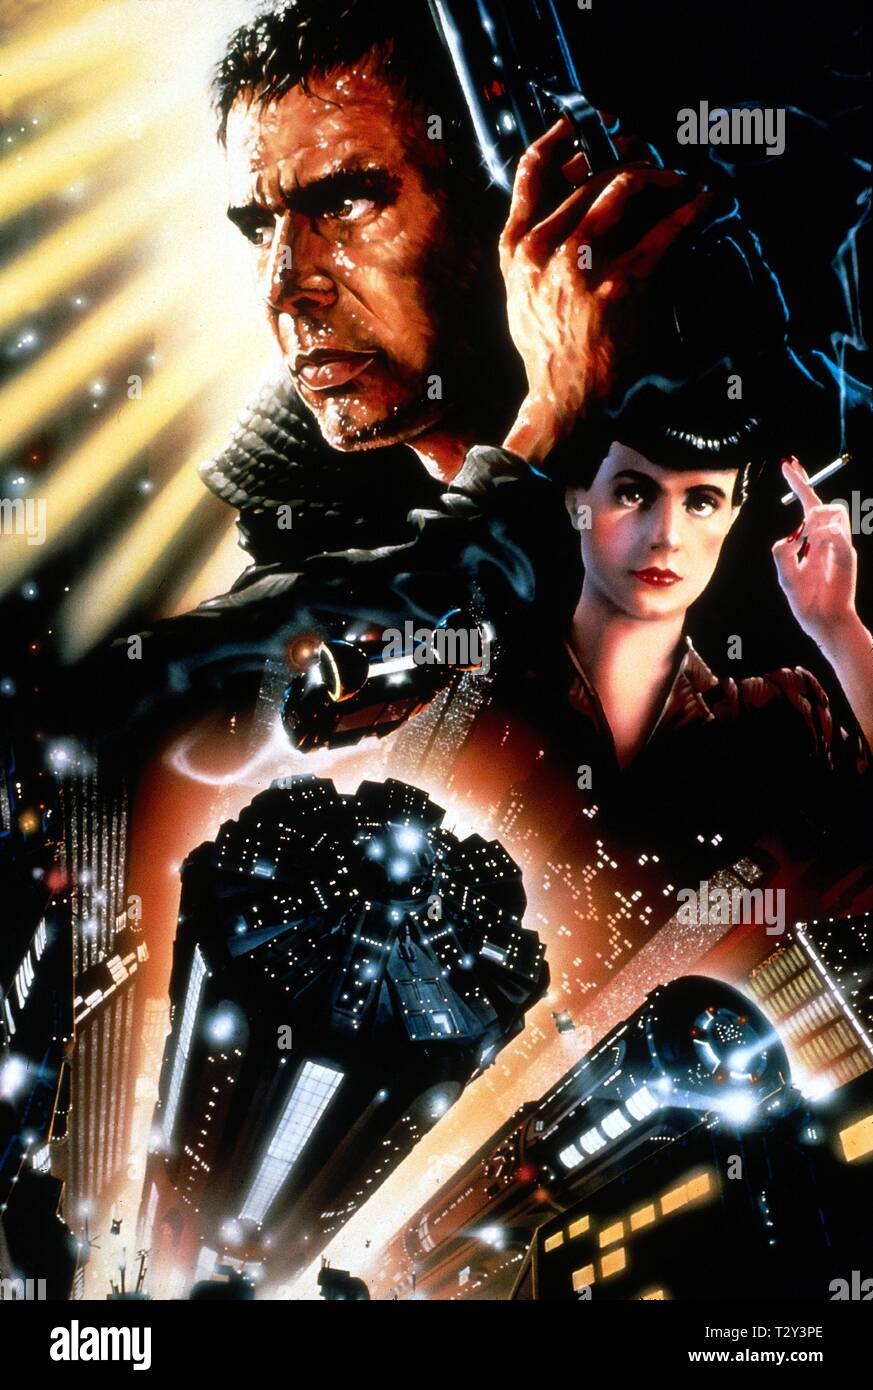 HARRISON FORD, SEAN YOUNG FILM ARTWORK, BLADE RUNNER, 1982 - Stock Image